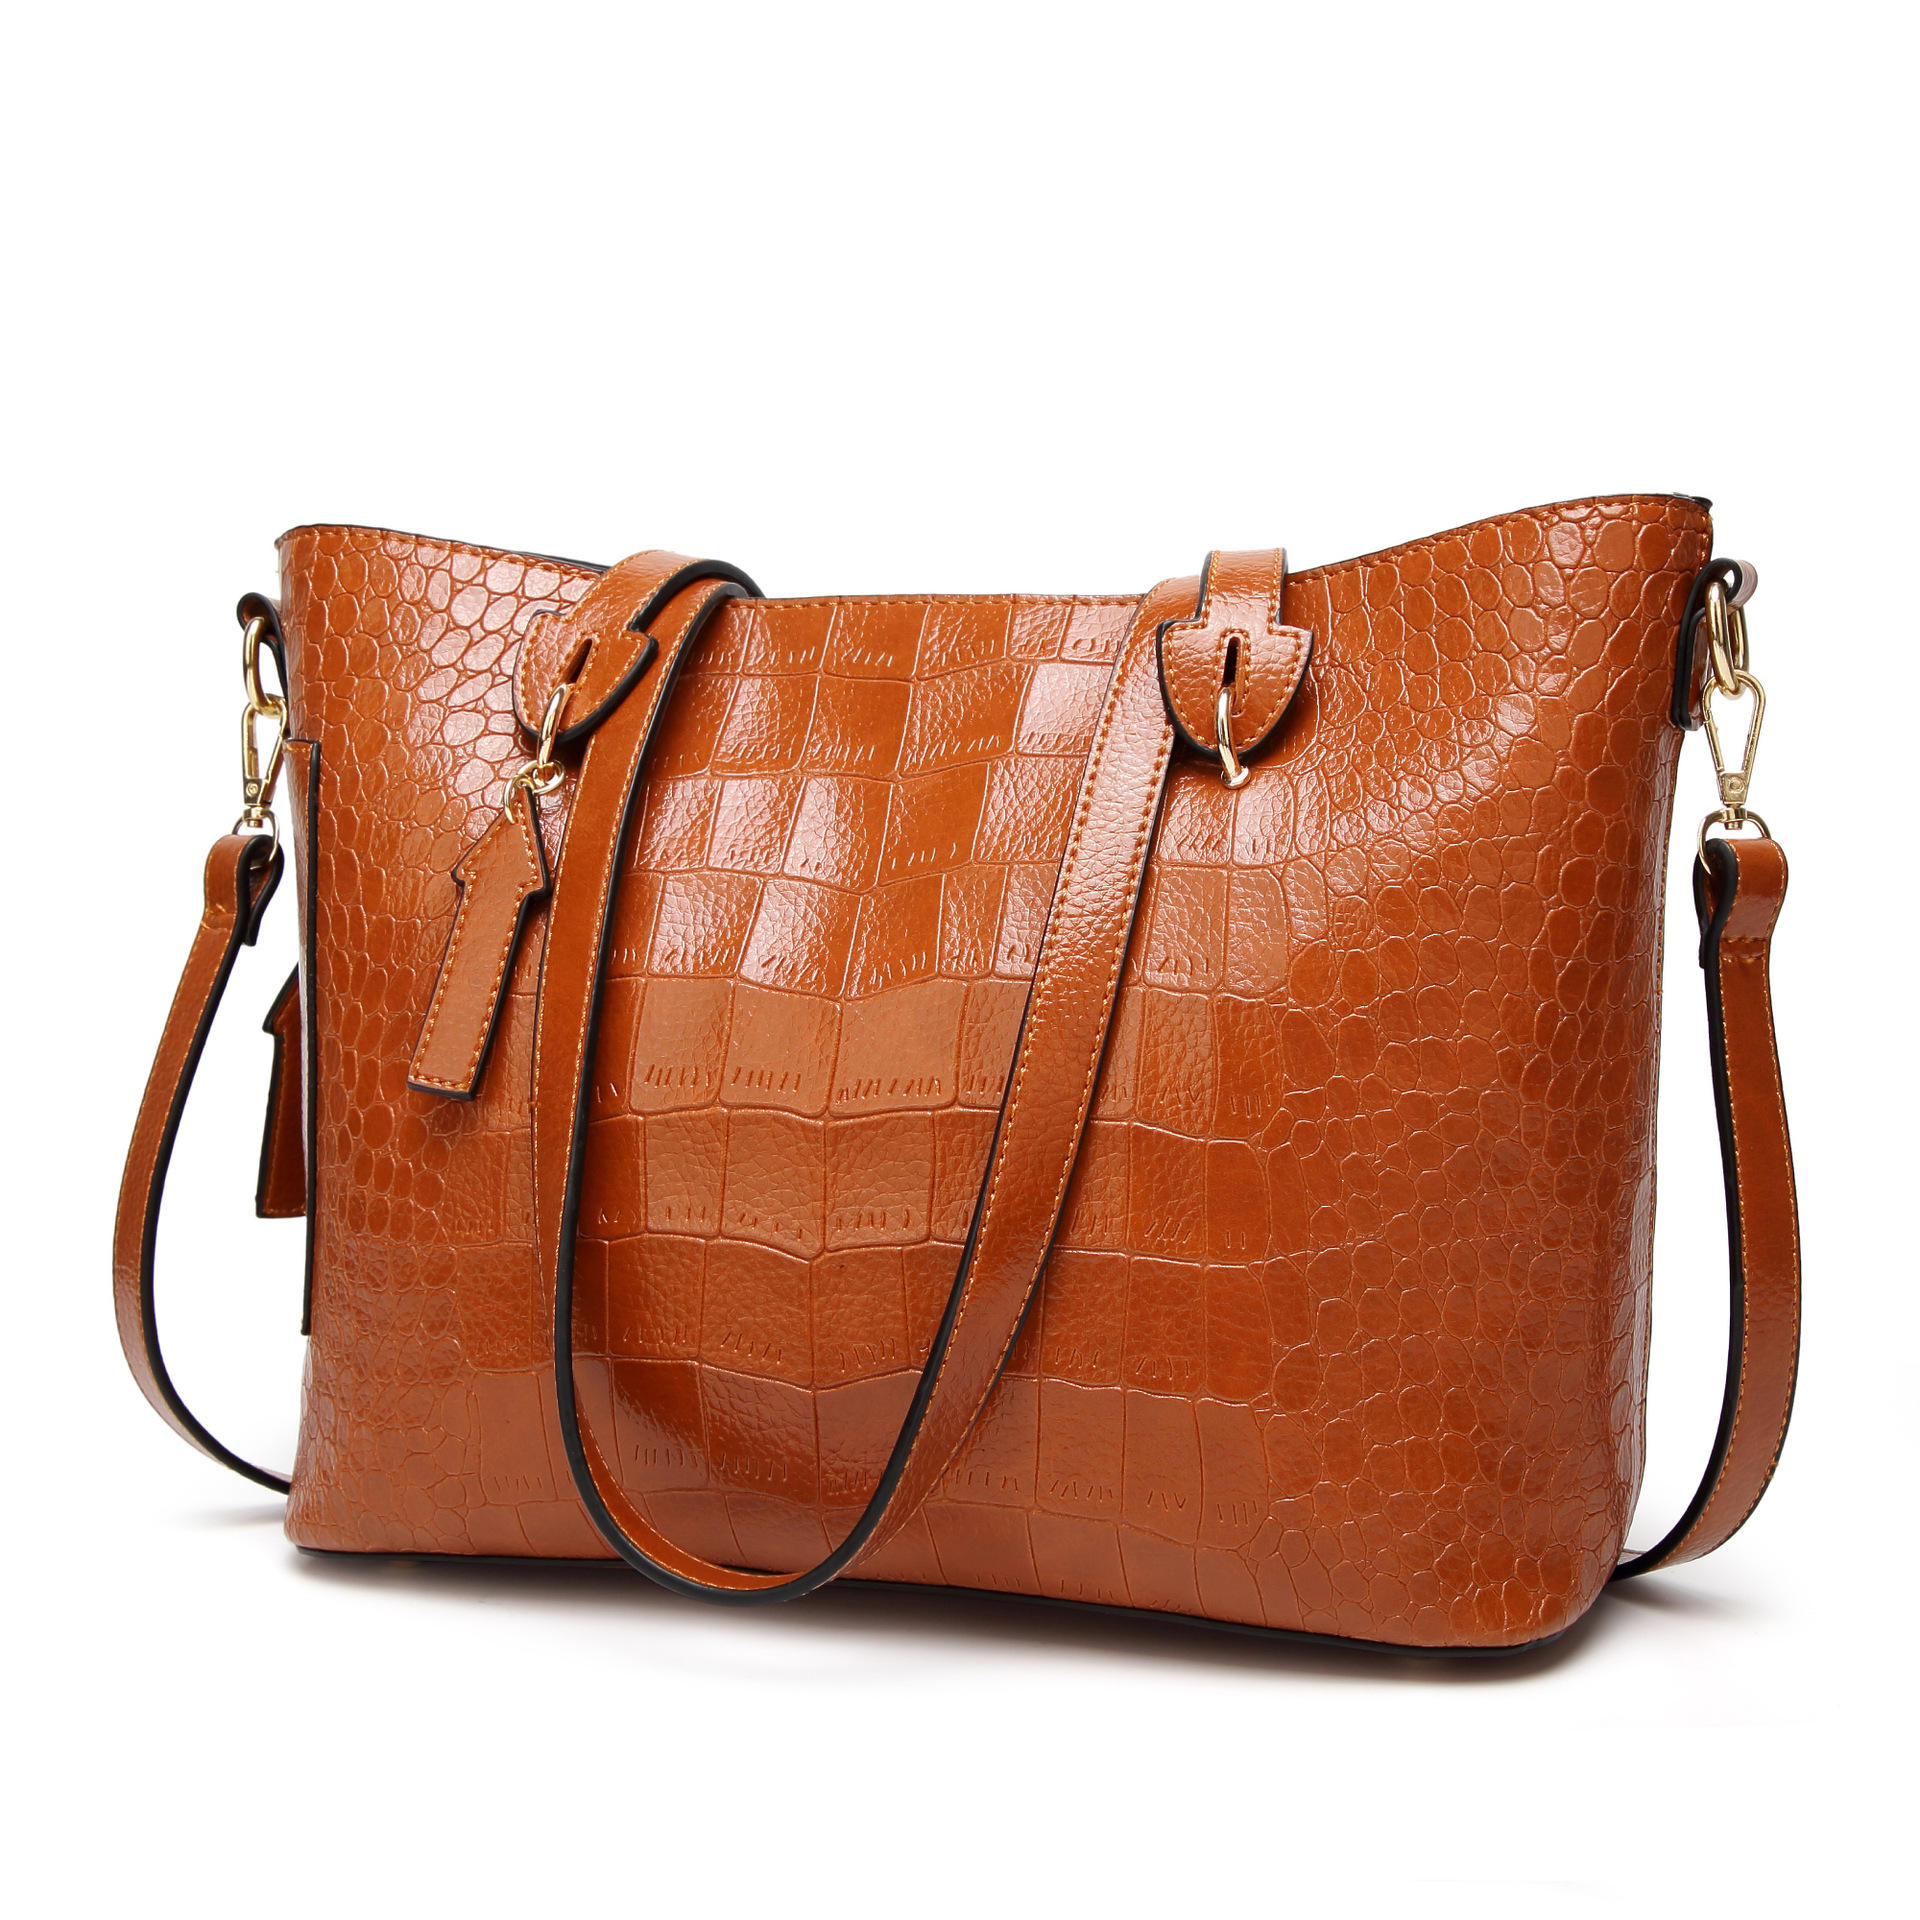 Angedanlia professional customized logo lady crocodile leather women bag handbag